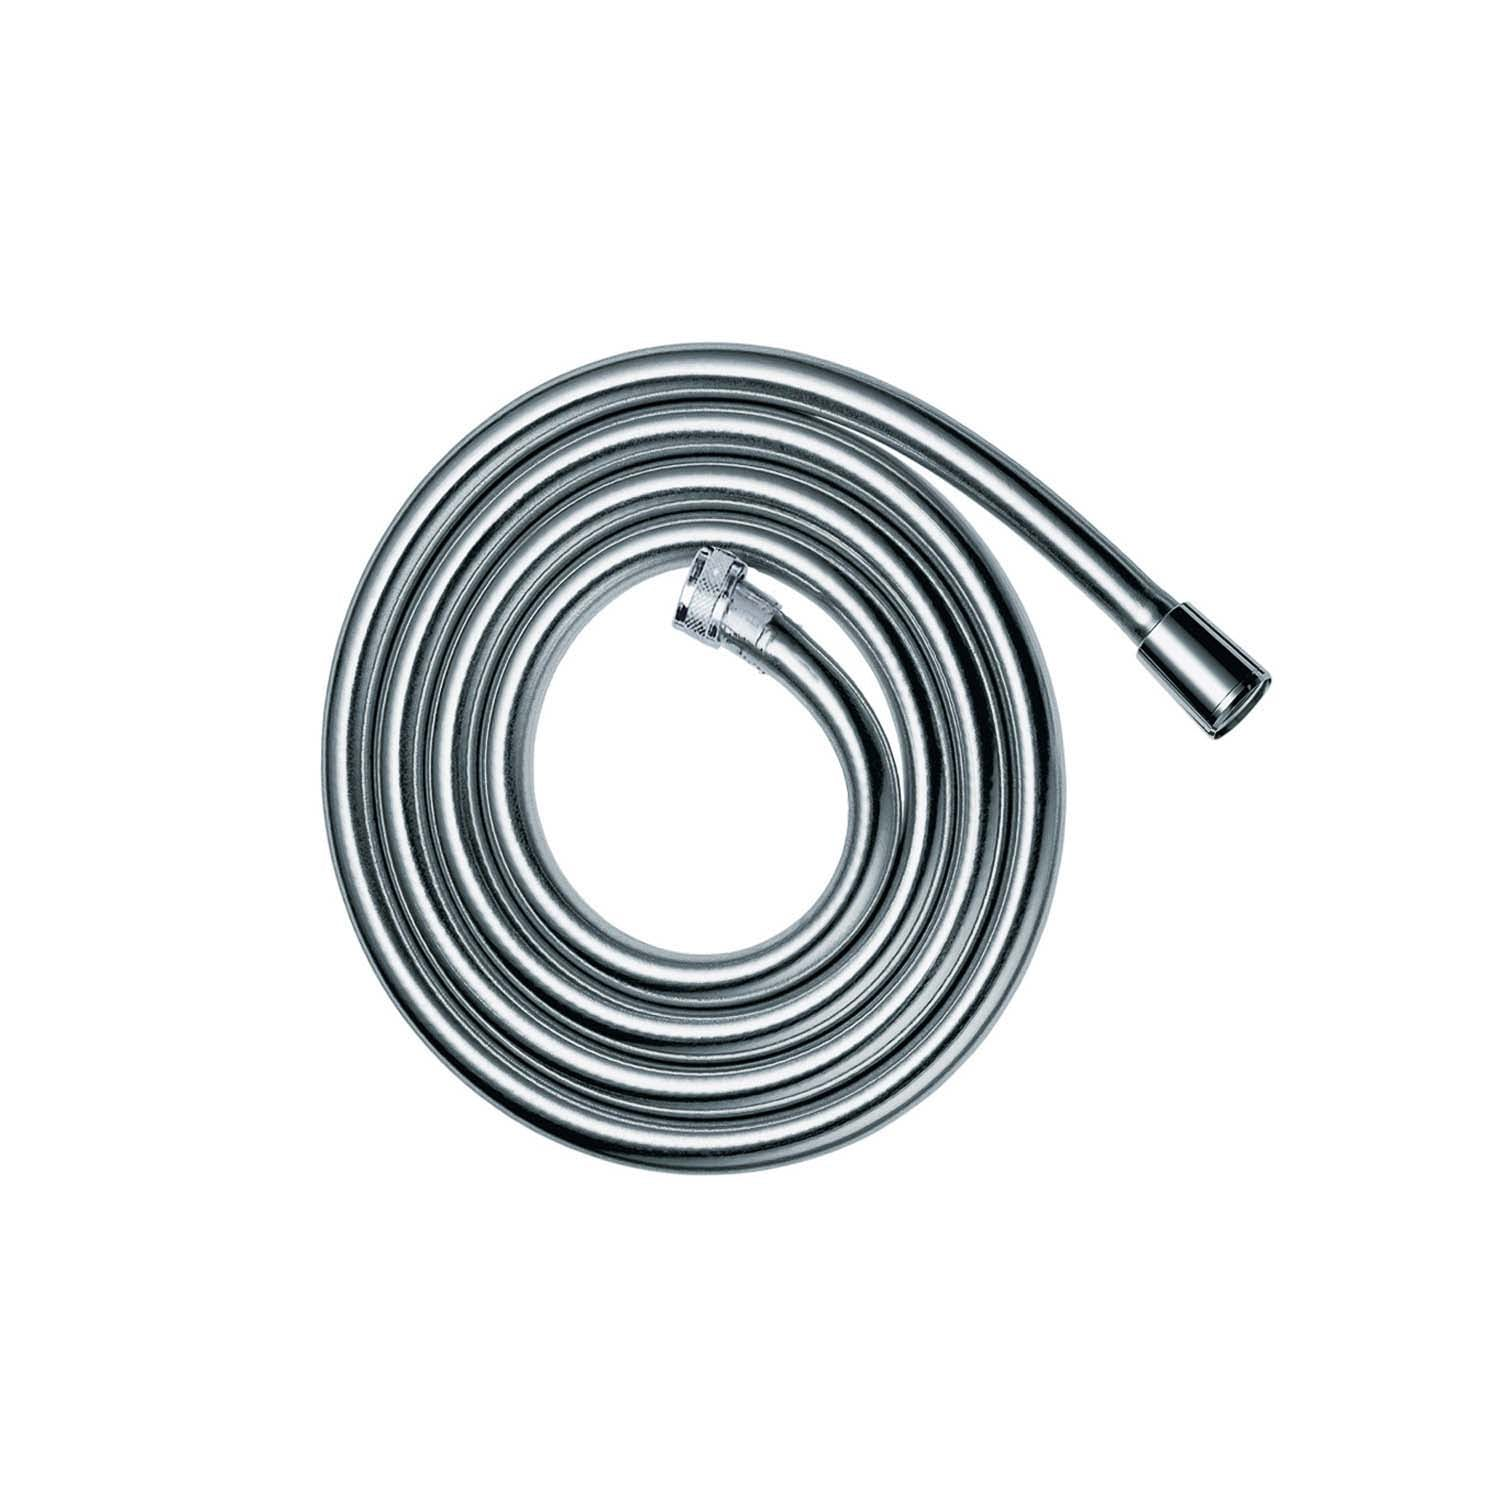 1600mm smooth metal shower hose with a plastic coating chrome on a white background